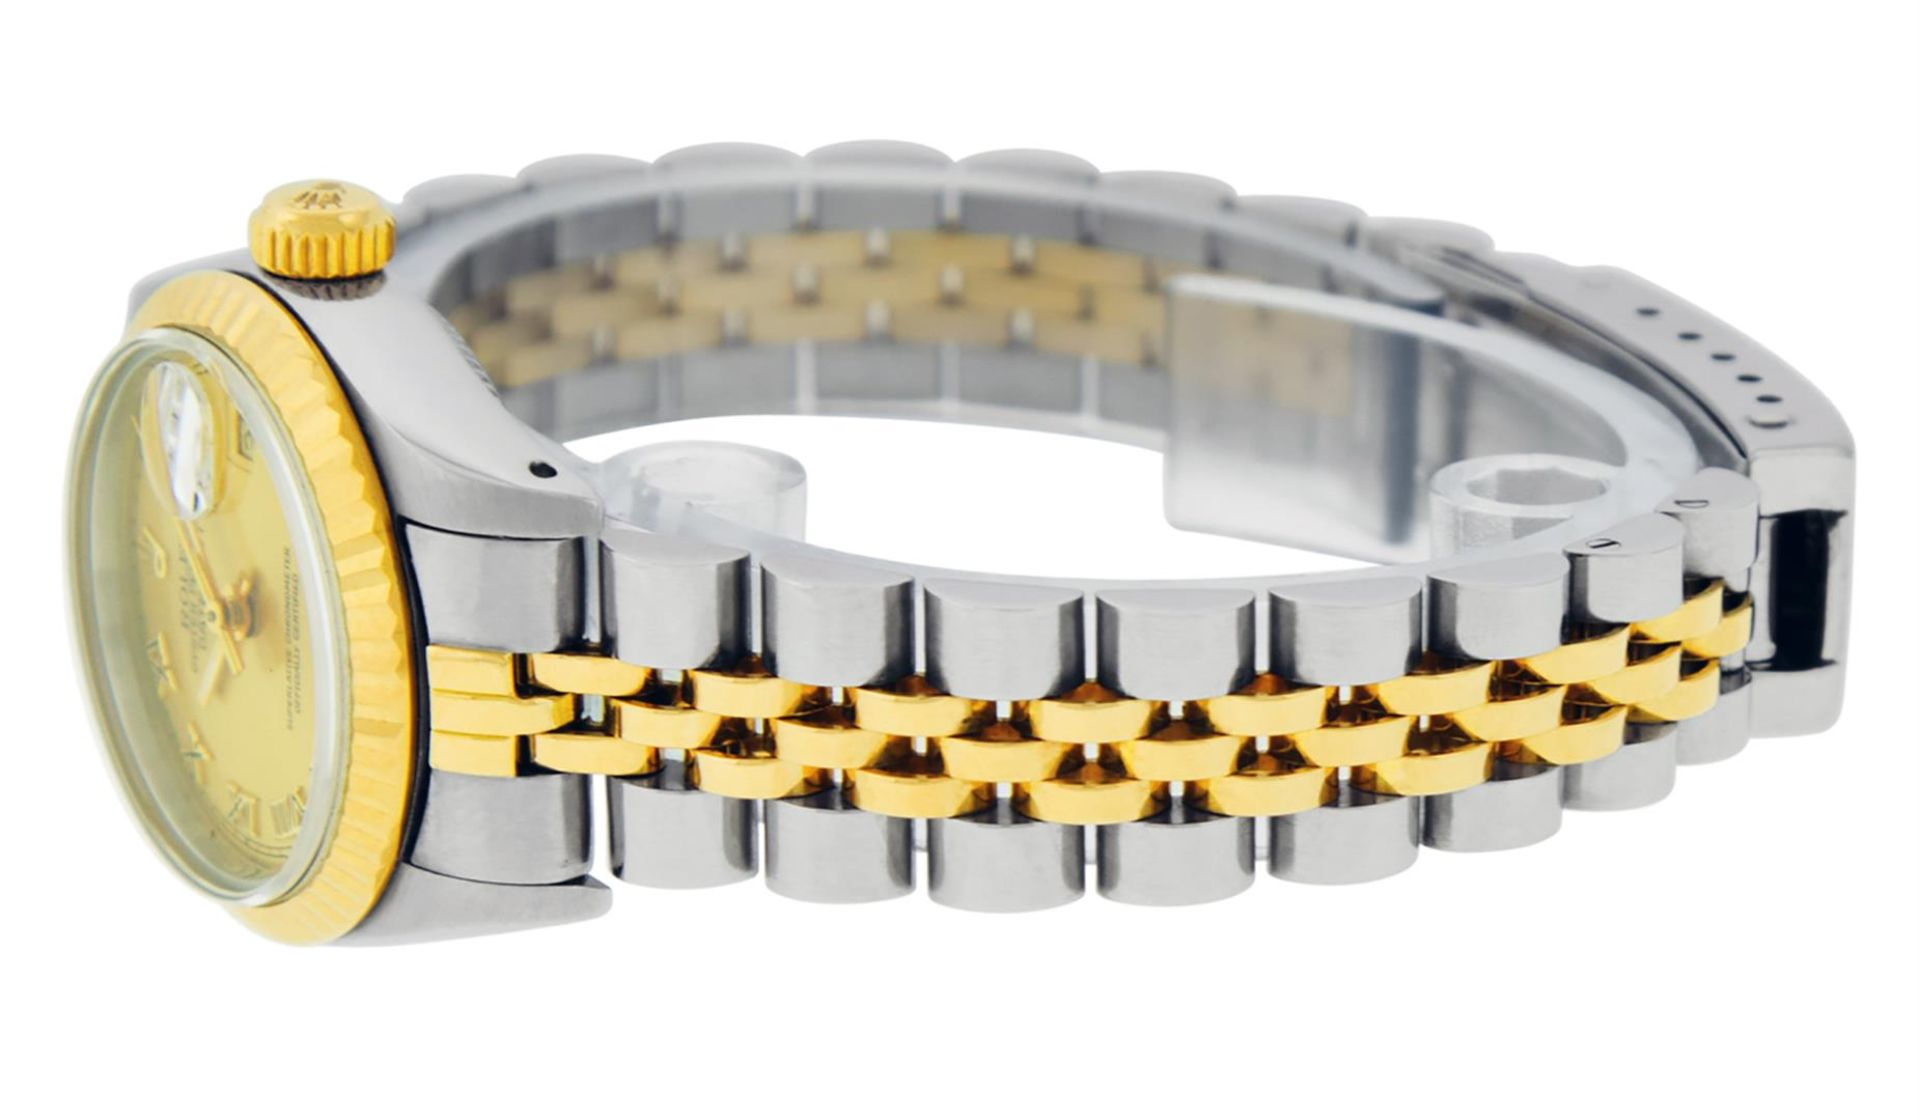 Rolex Ladies 2 Tone Factory Champagne Roman Fluted Datejust Wristwatch - Image 6 of 9